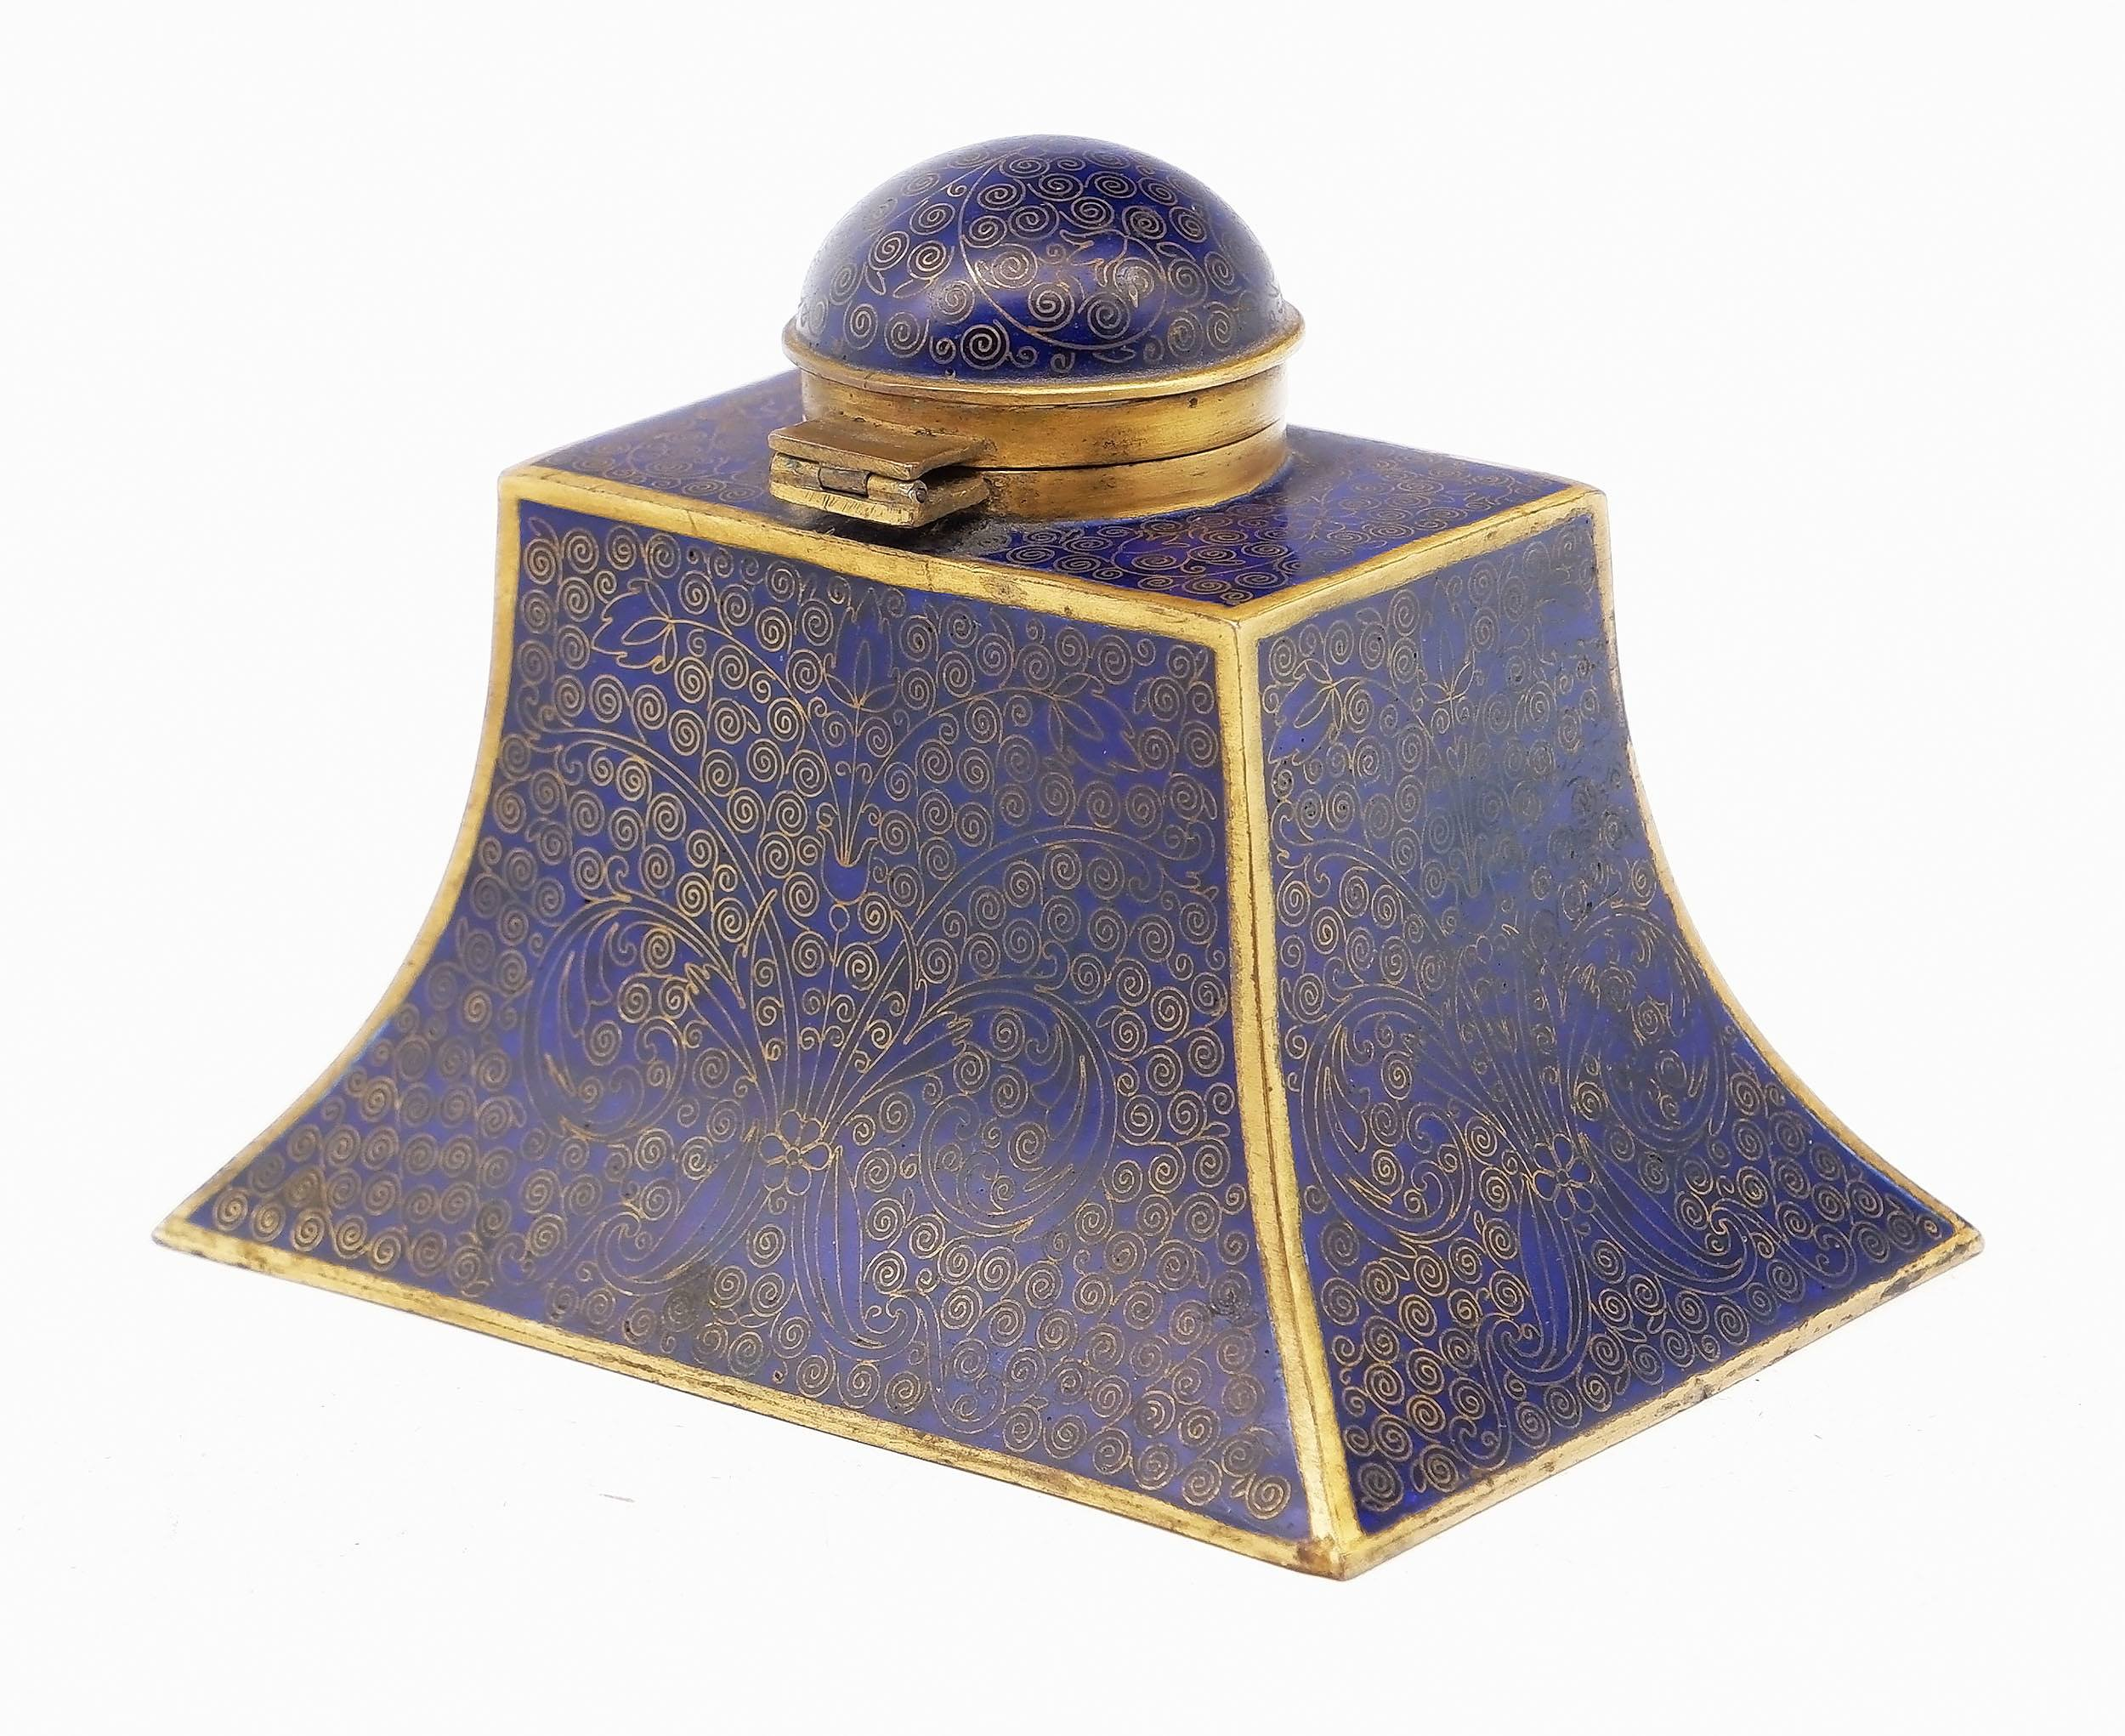 'Good Chinese Cloisonne Enamel Inkwell, Early 20th Century'